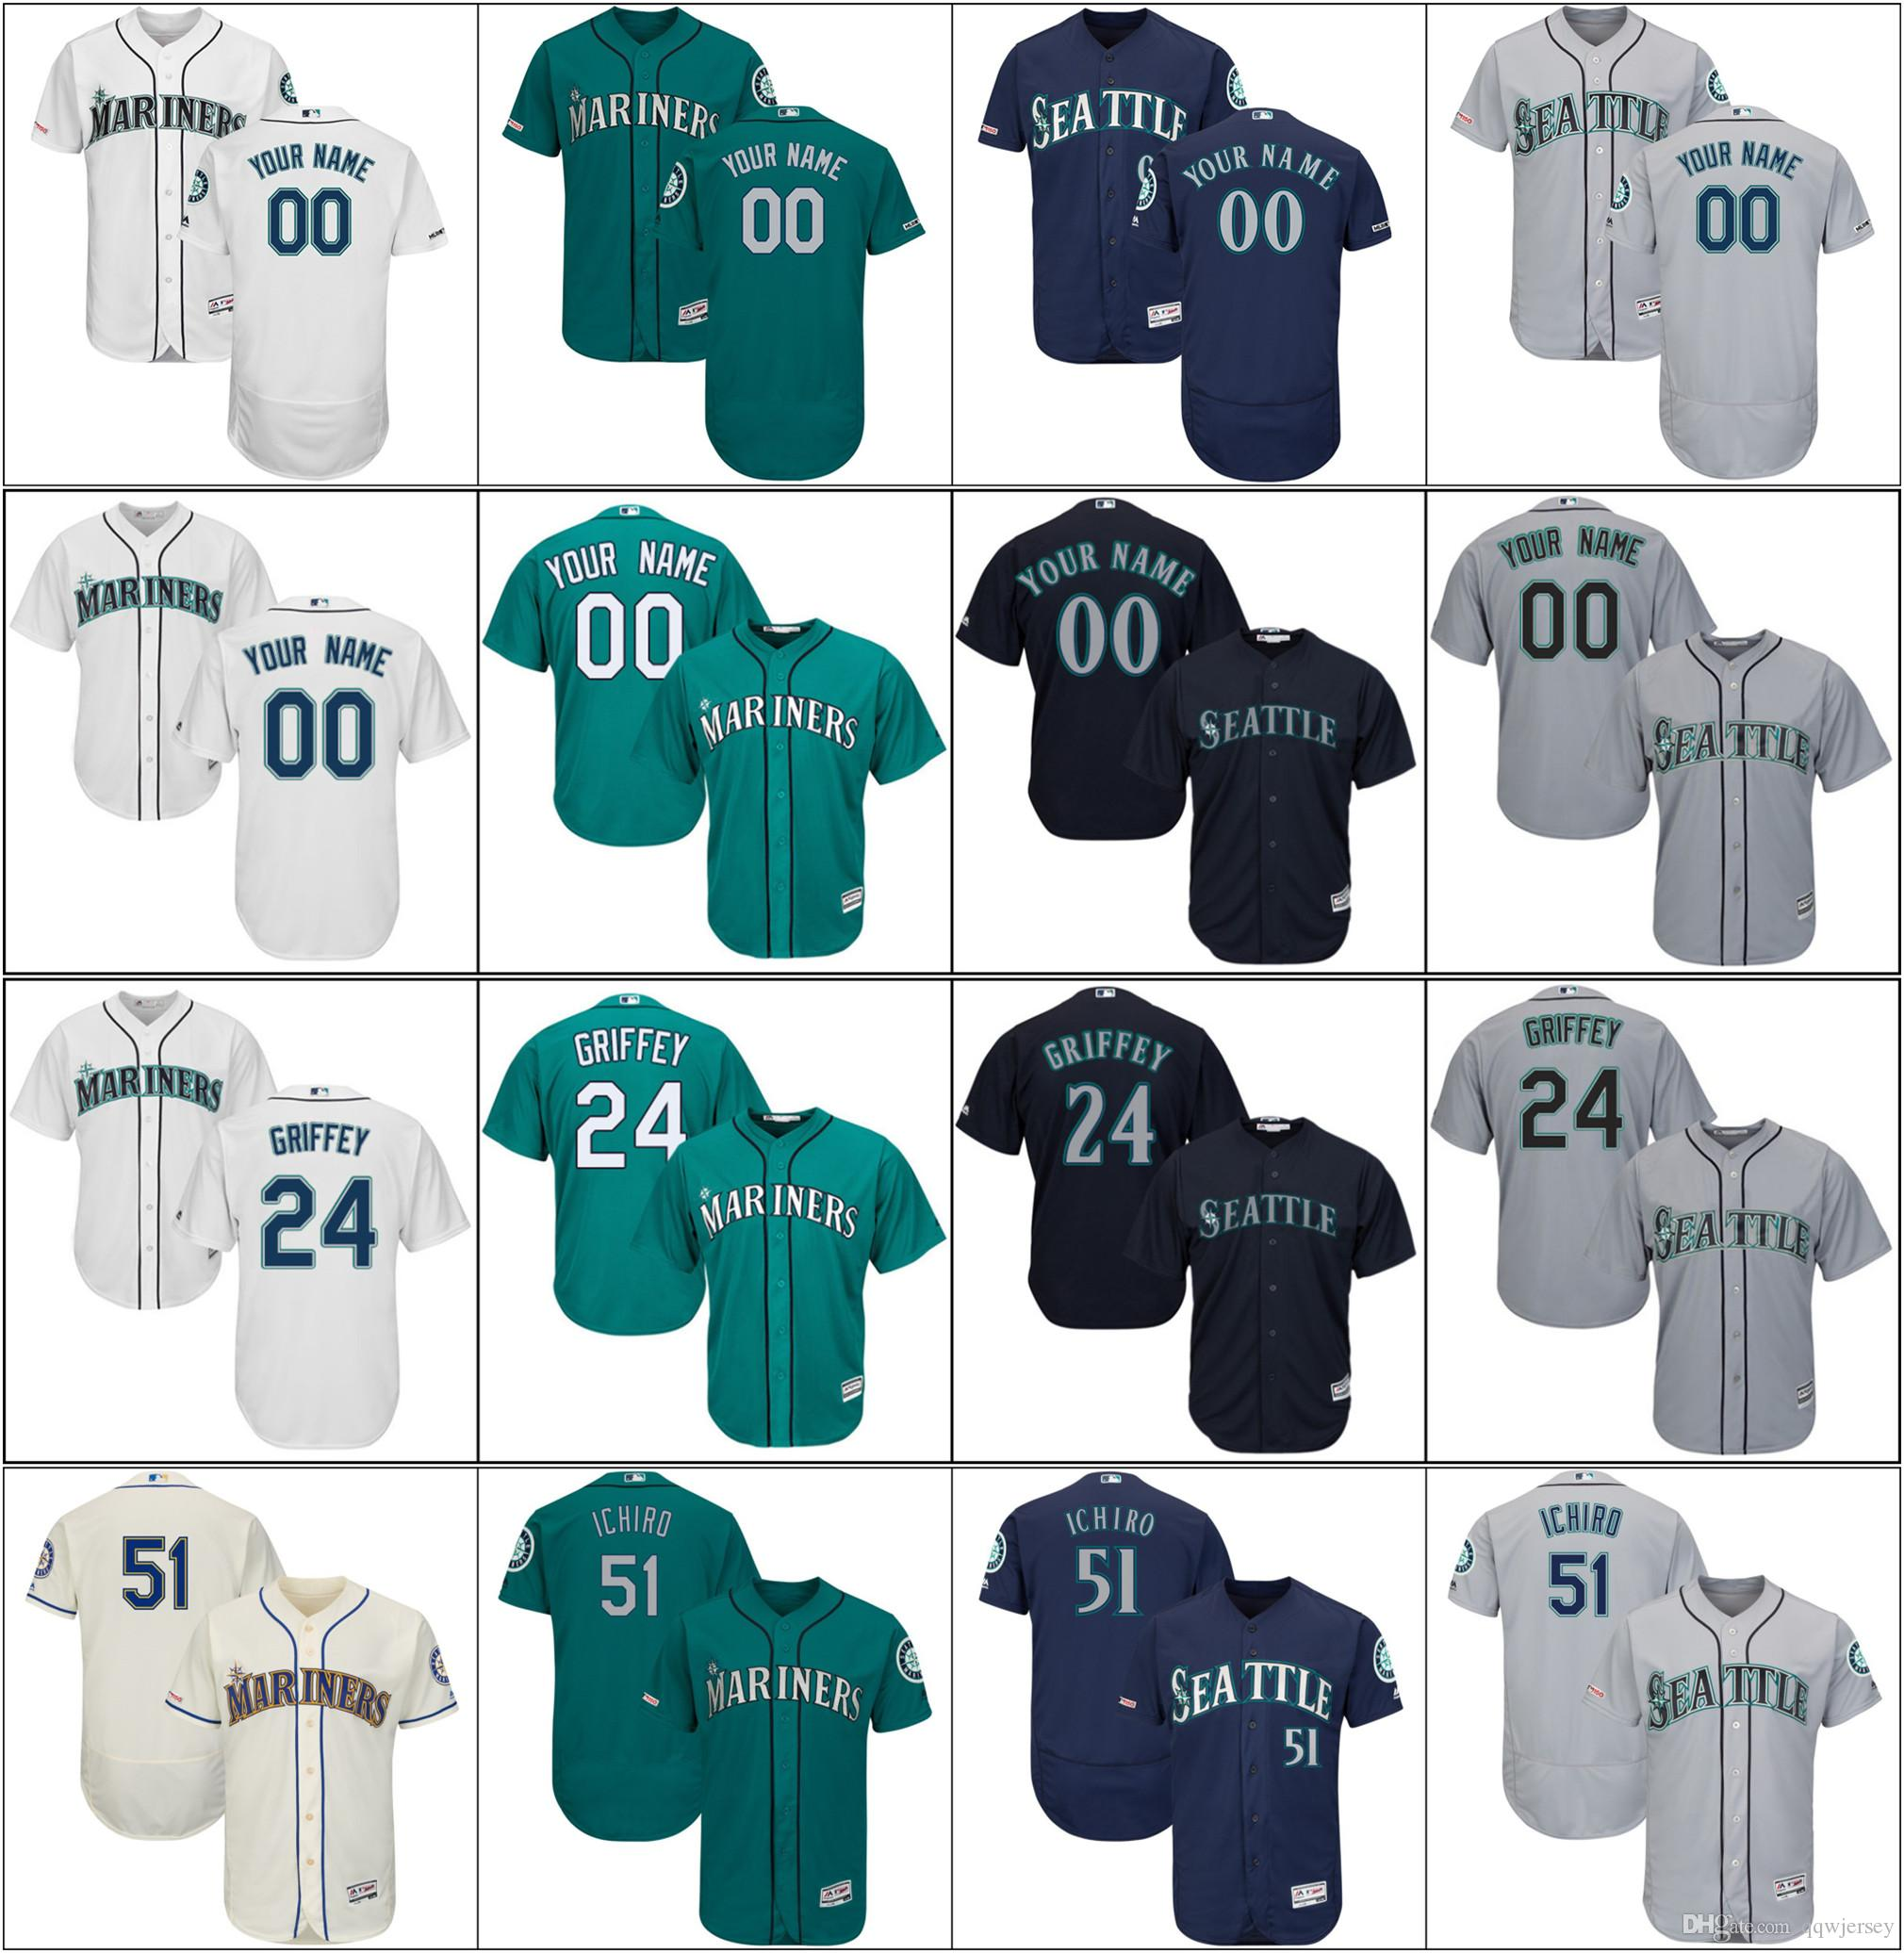 06e362b04cf Men Seattle Cheap New Mariners Ichiro 51 Suzuki Ken 24 Griffey Jr ...